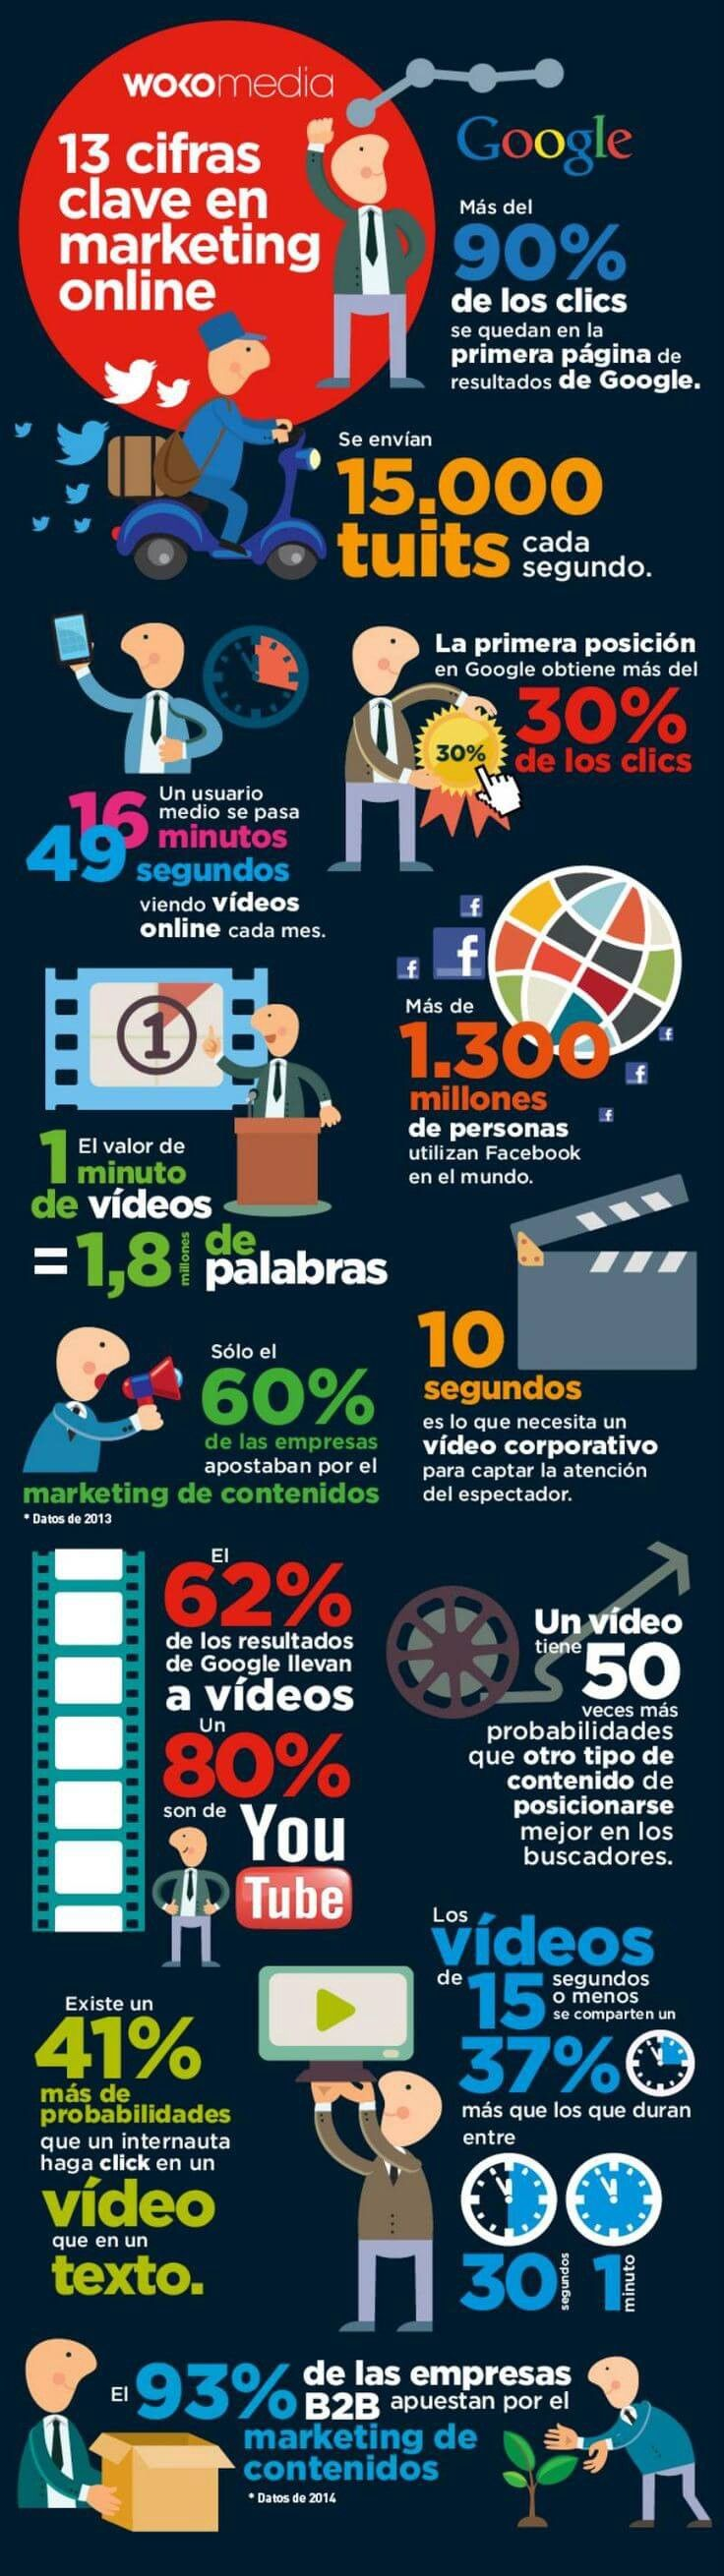 13 cifras clave en marketing online — VEC Studios — Medium